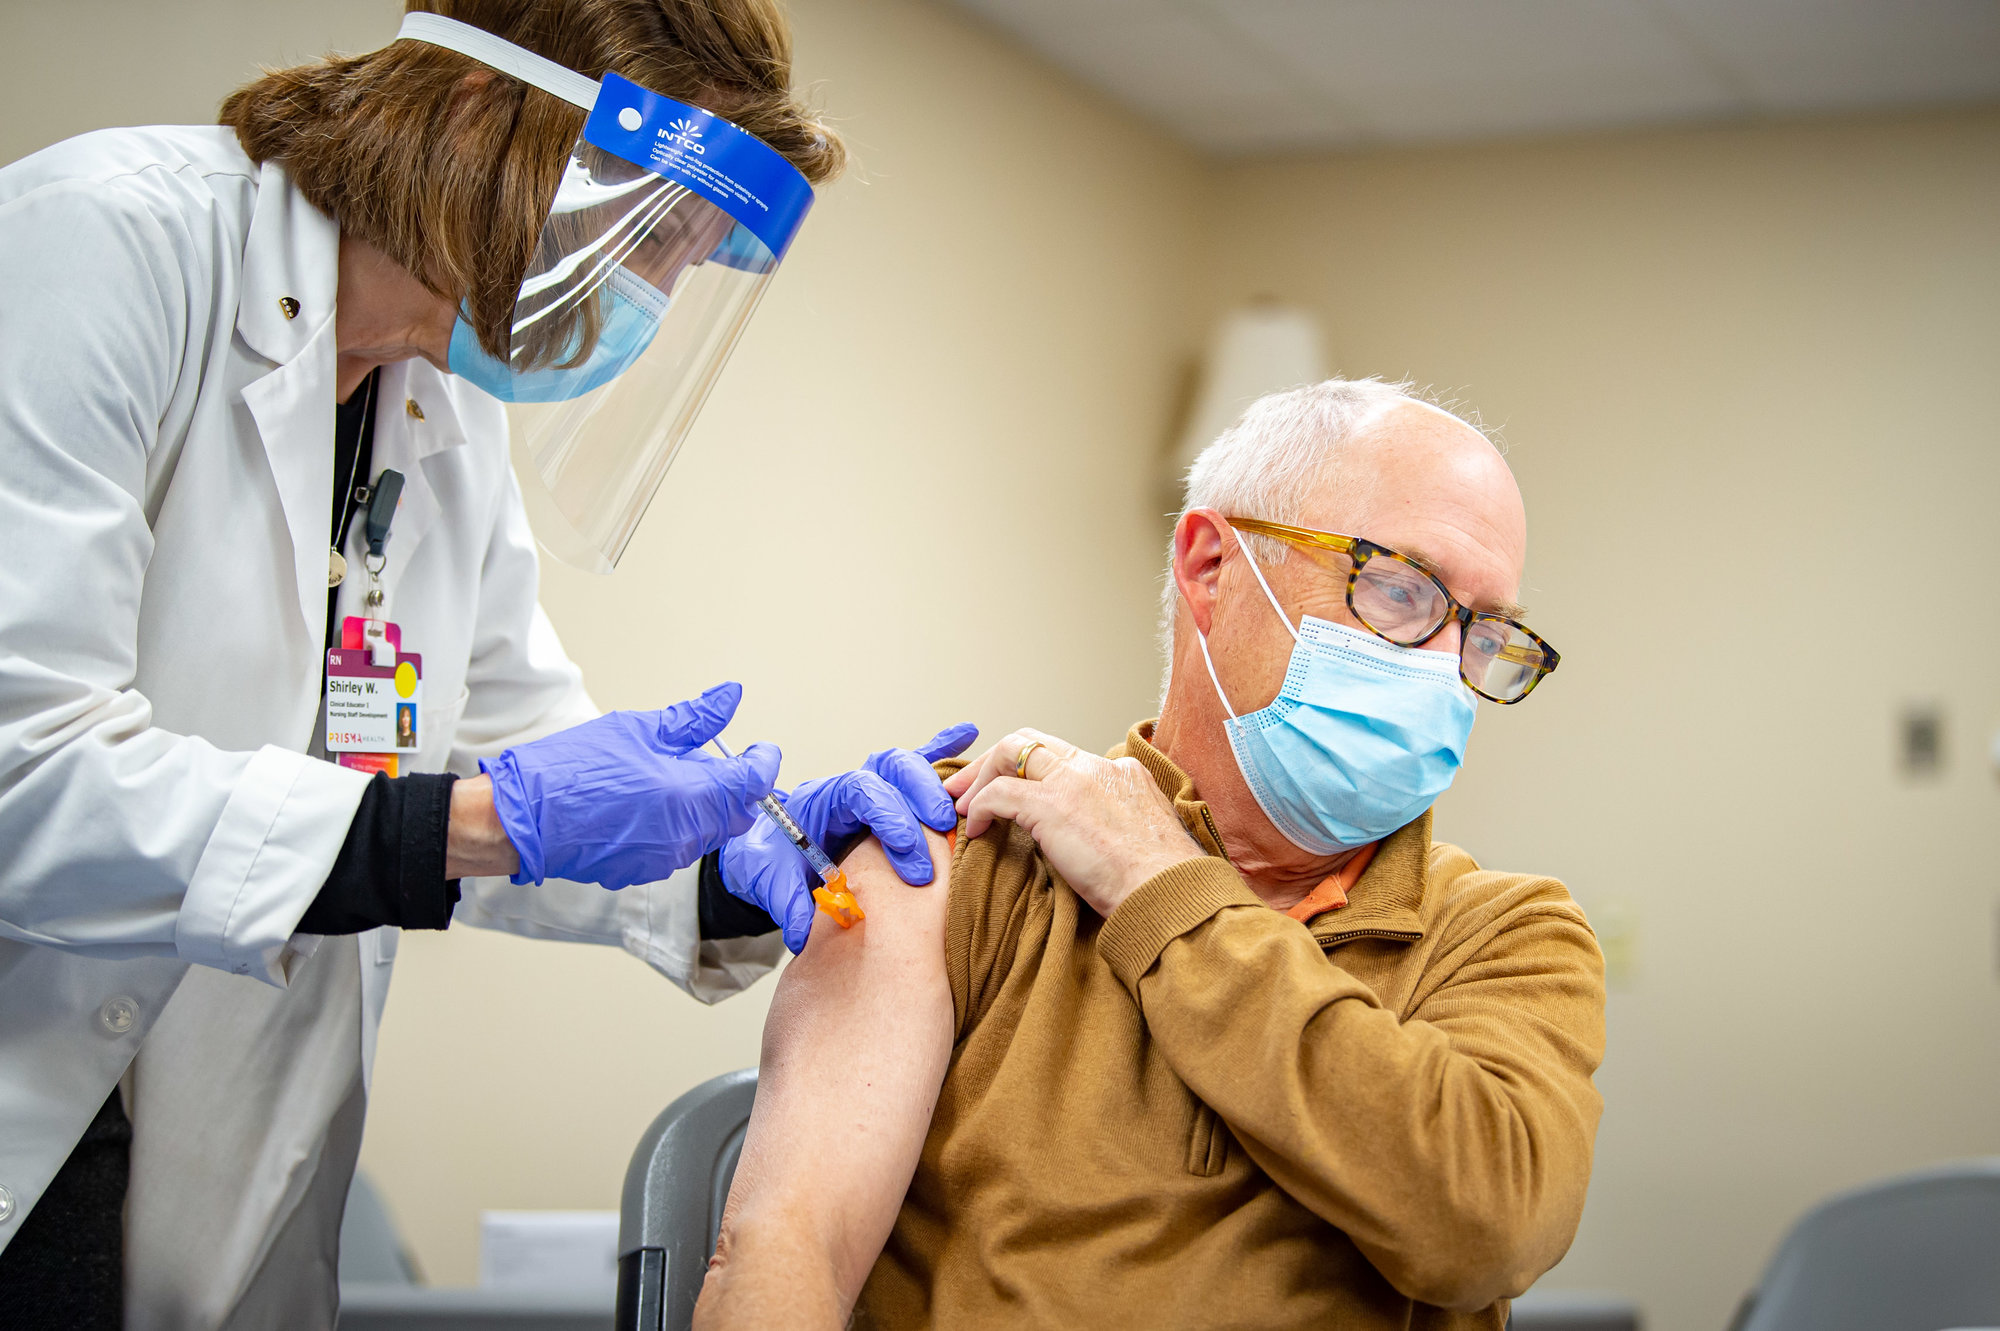 Dr. Gene Dickerson, a surgeon at Prisma Health Tuomey Hospital and currently the hospital's chief medical officer, receives his first Pfizer COVID-19 vaccine shot on Dec. 23, 2020.